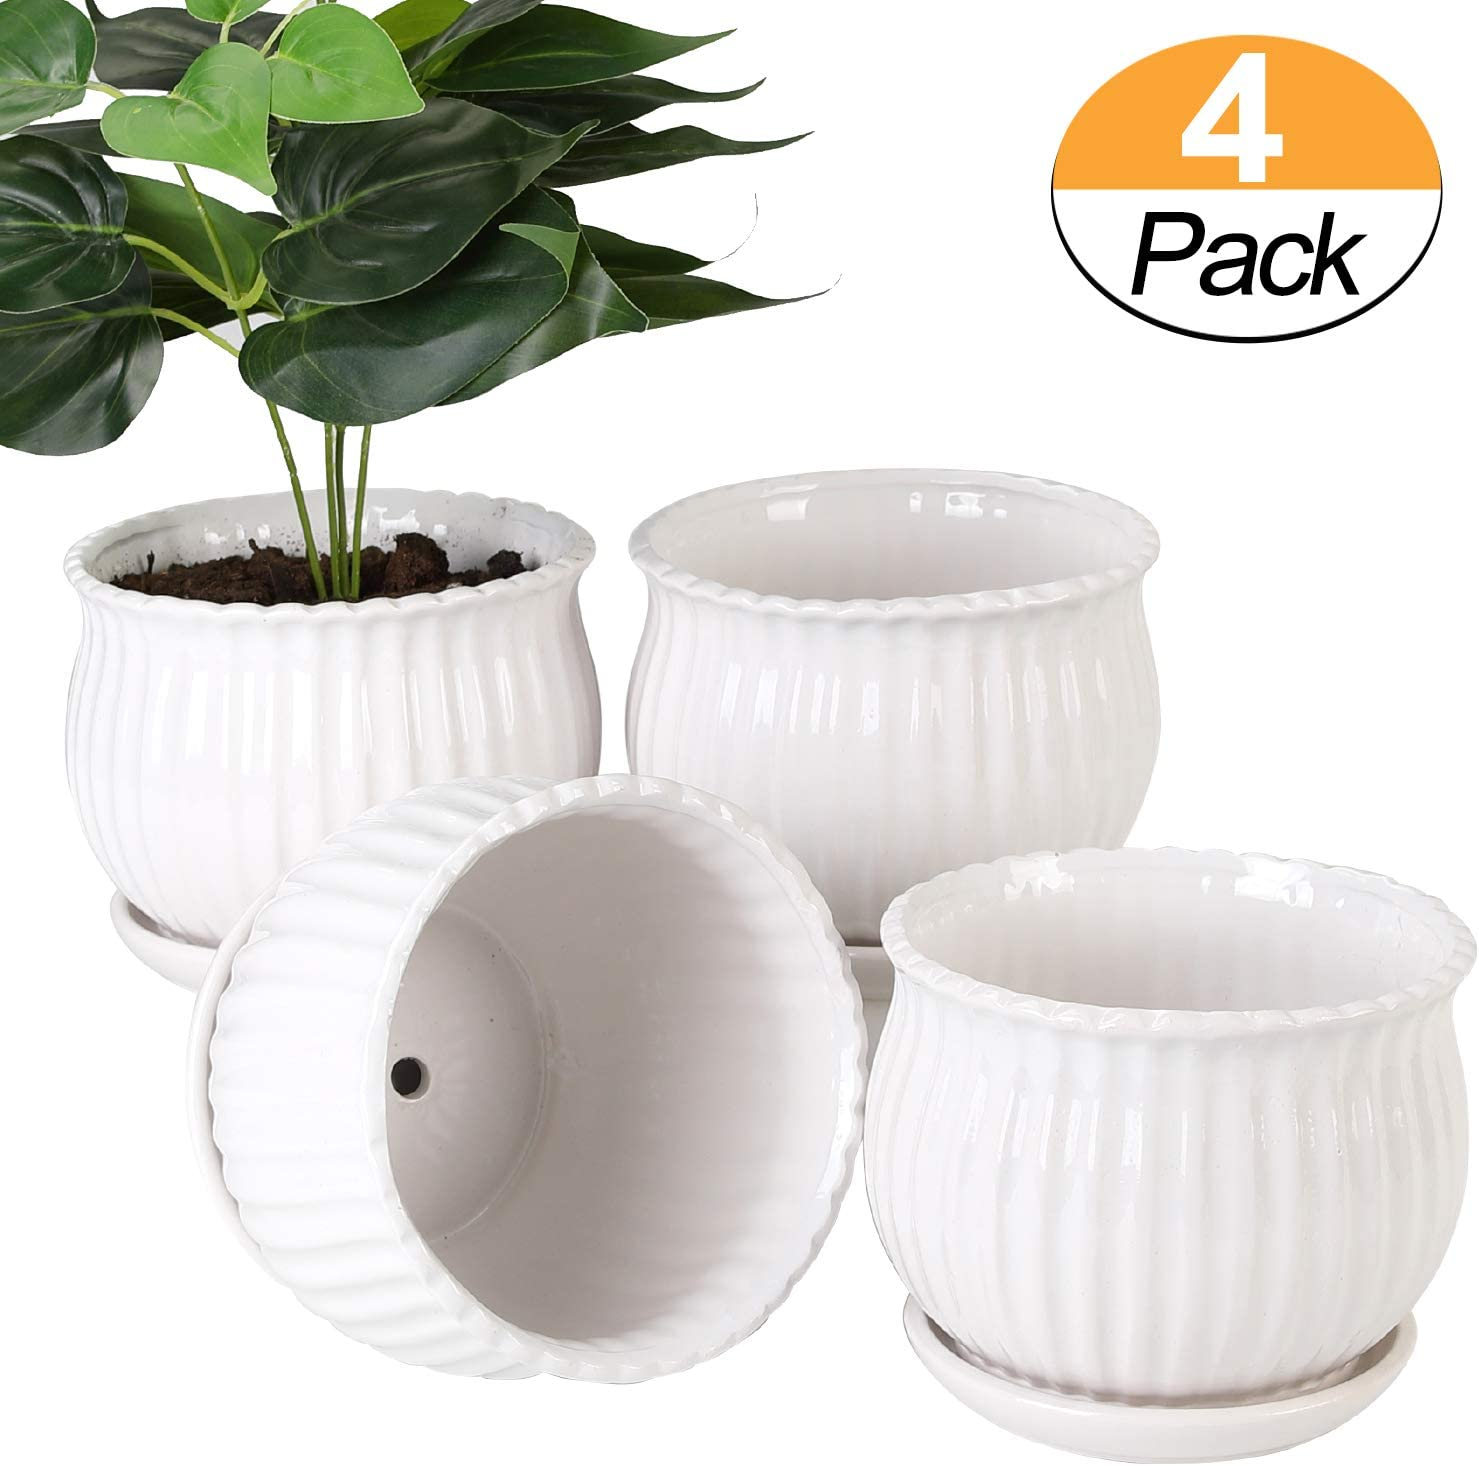 Plant pots – 5.5-inch Cylindrical Ceramic Planters with Connected Saucer, Round Modern Ceramic Garden pots – Succulent Medium-Sized Plant pots Set of 4 Pure White